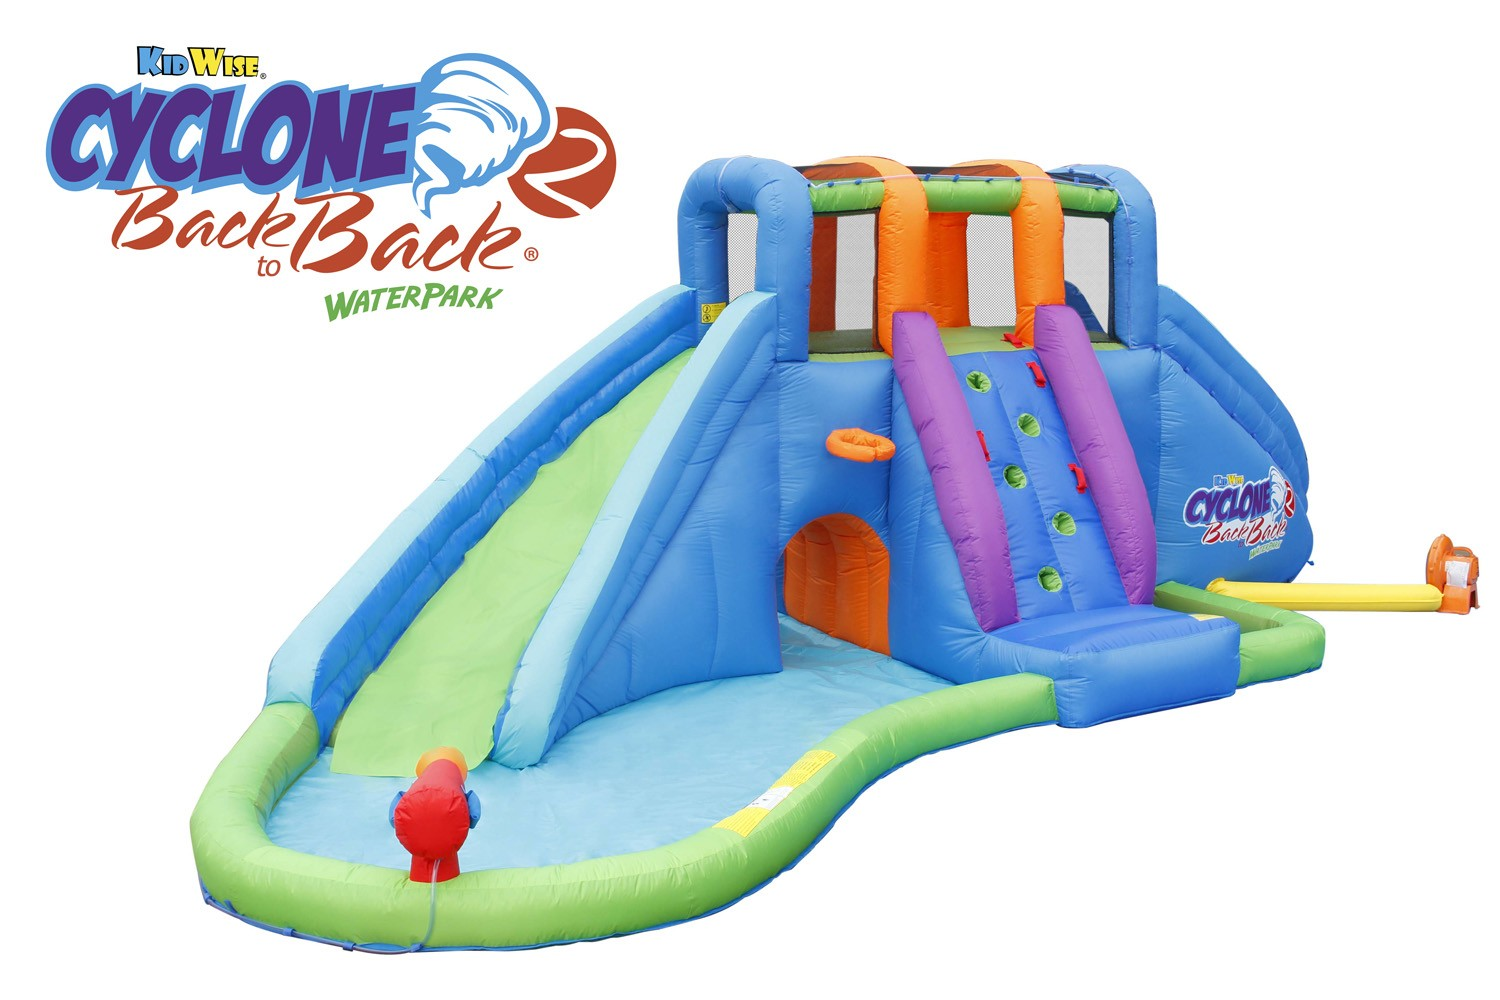 Cyclone 2 Back to Back® Waterpark and Lazy River